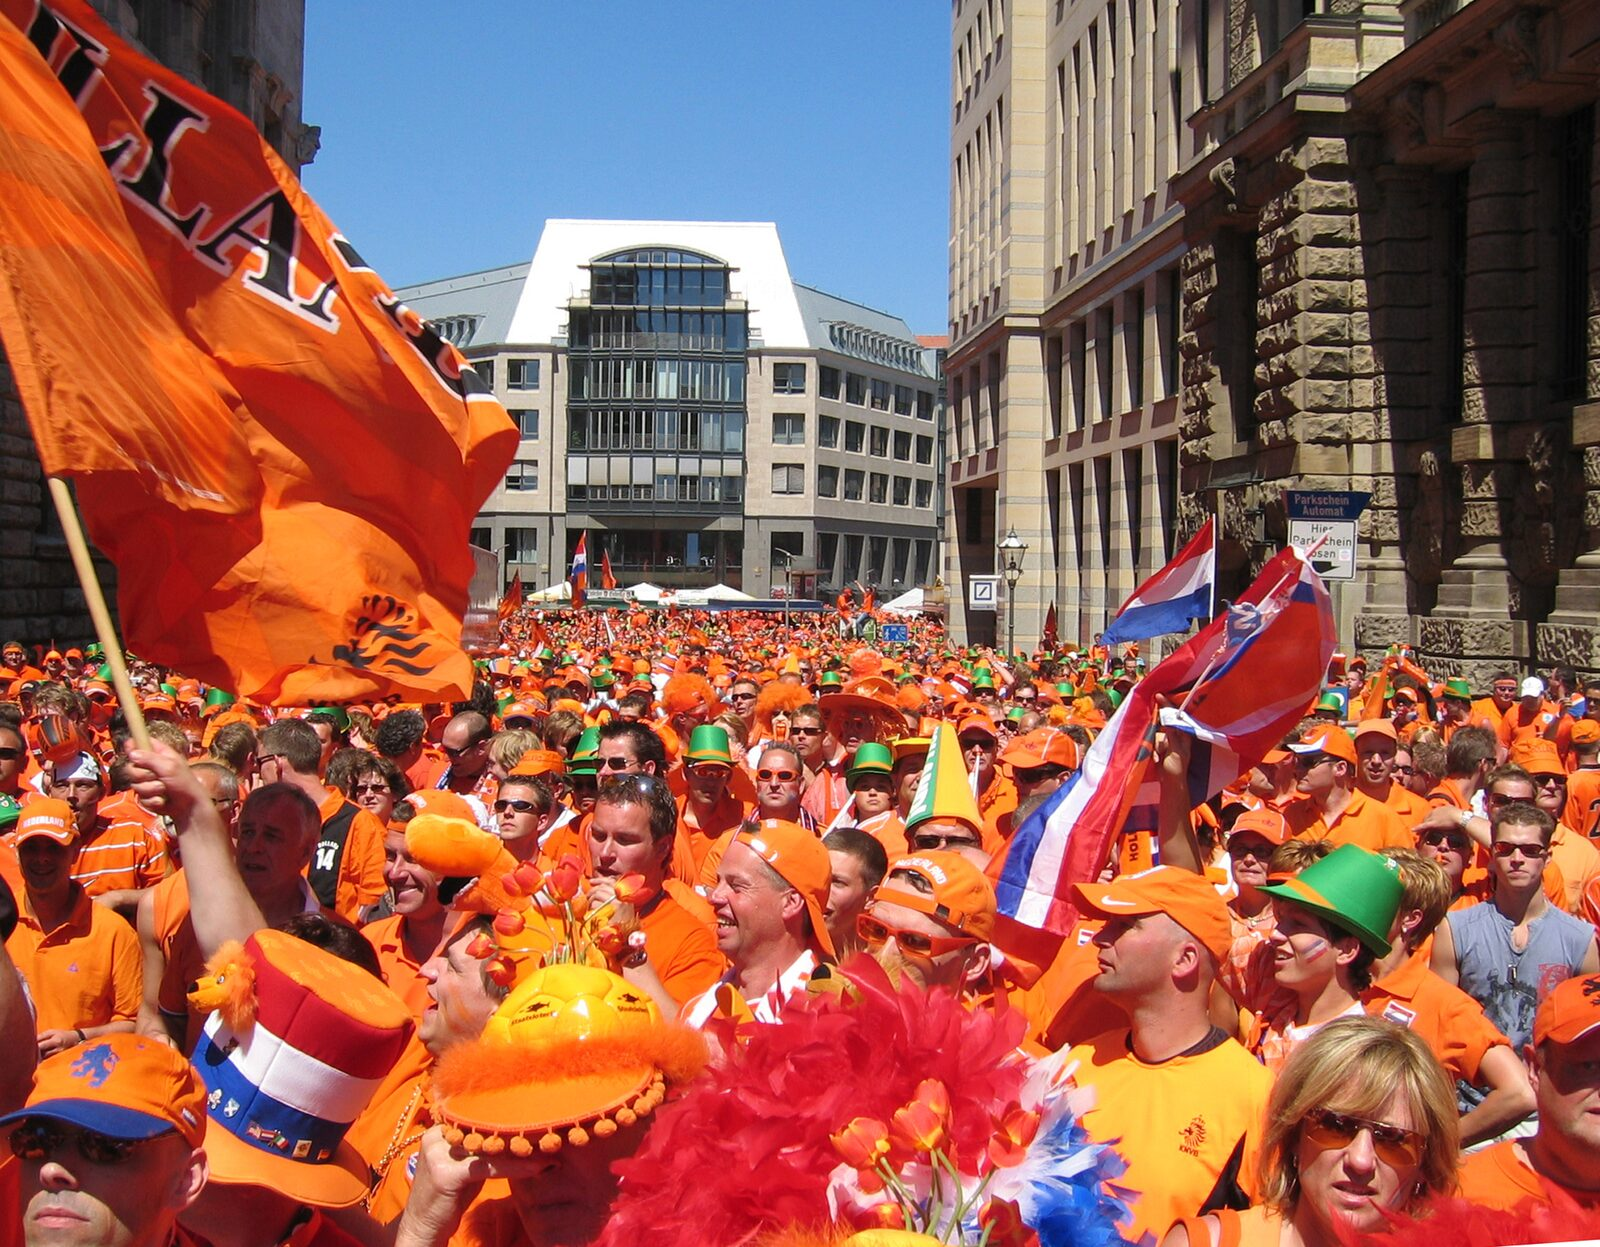 King's Day Voorthuizen